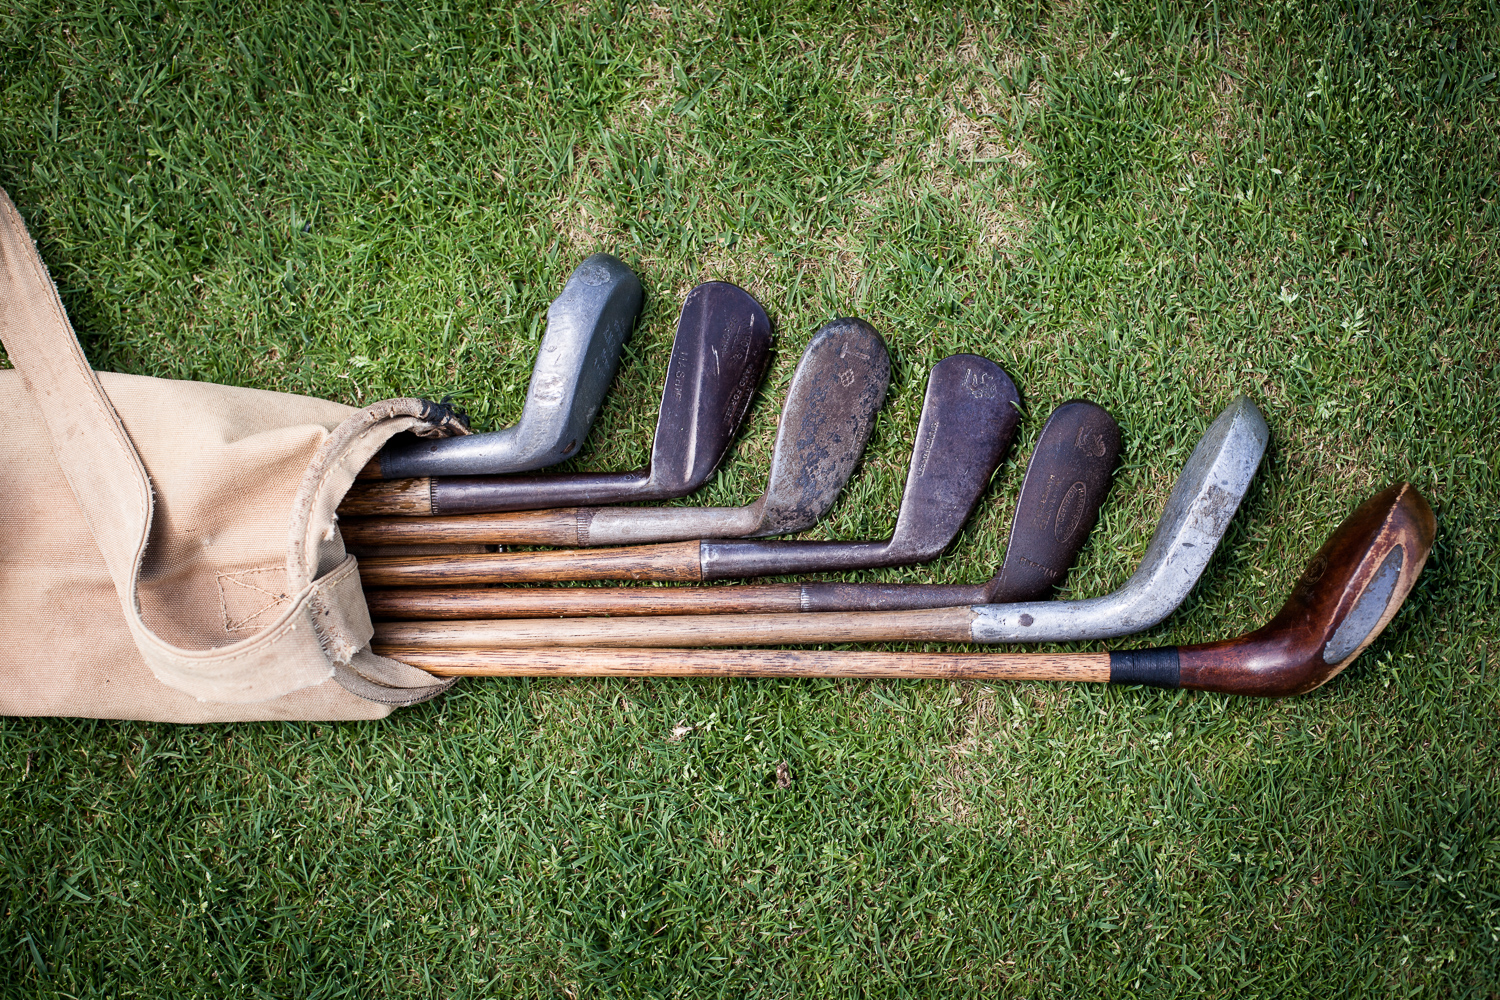 Hickory golf clubs on the green. By Vermont photographer Monica Donovan for Kingdom Magazine